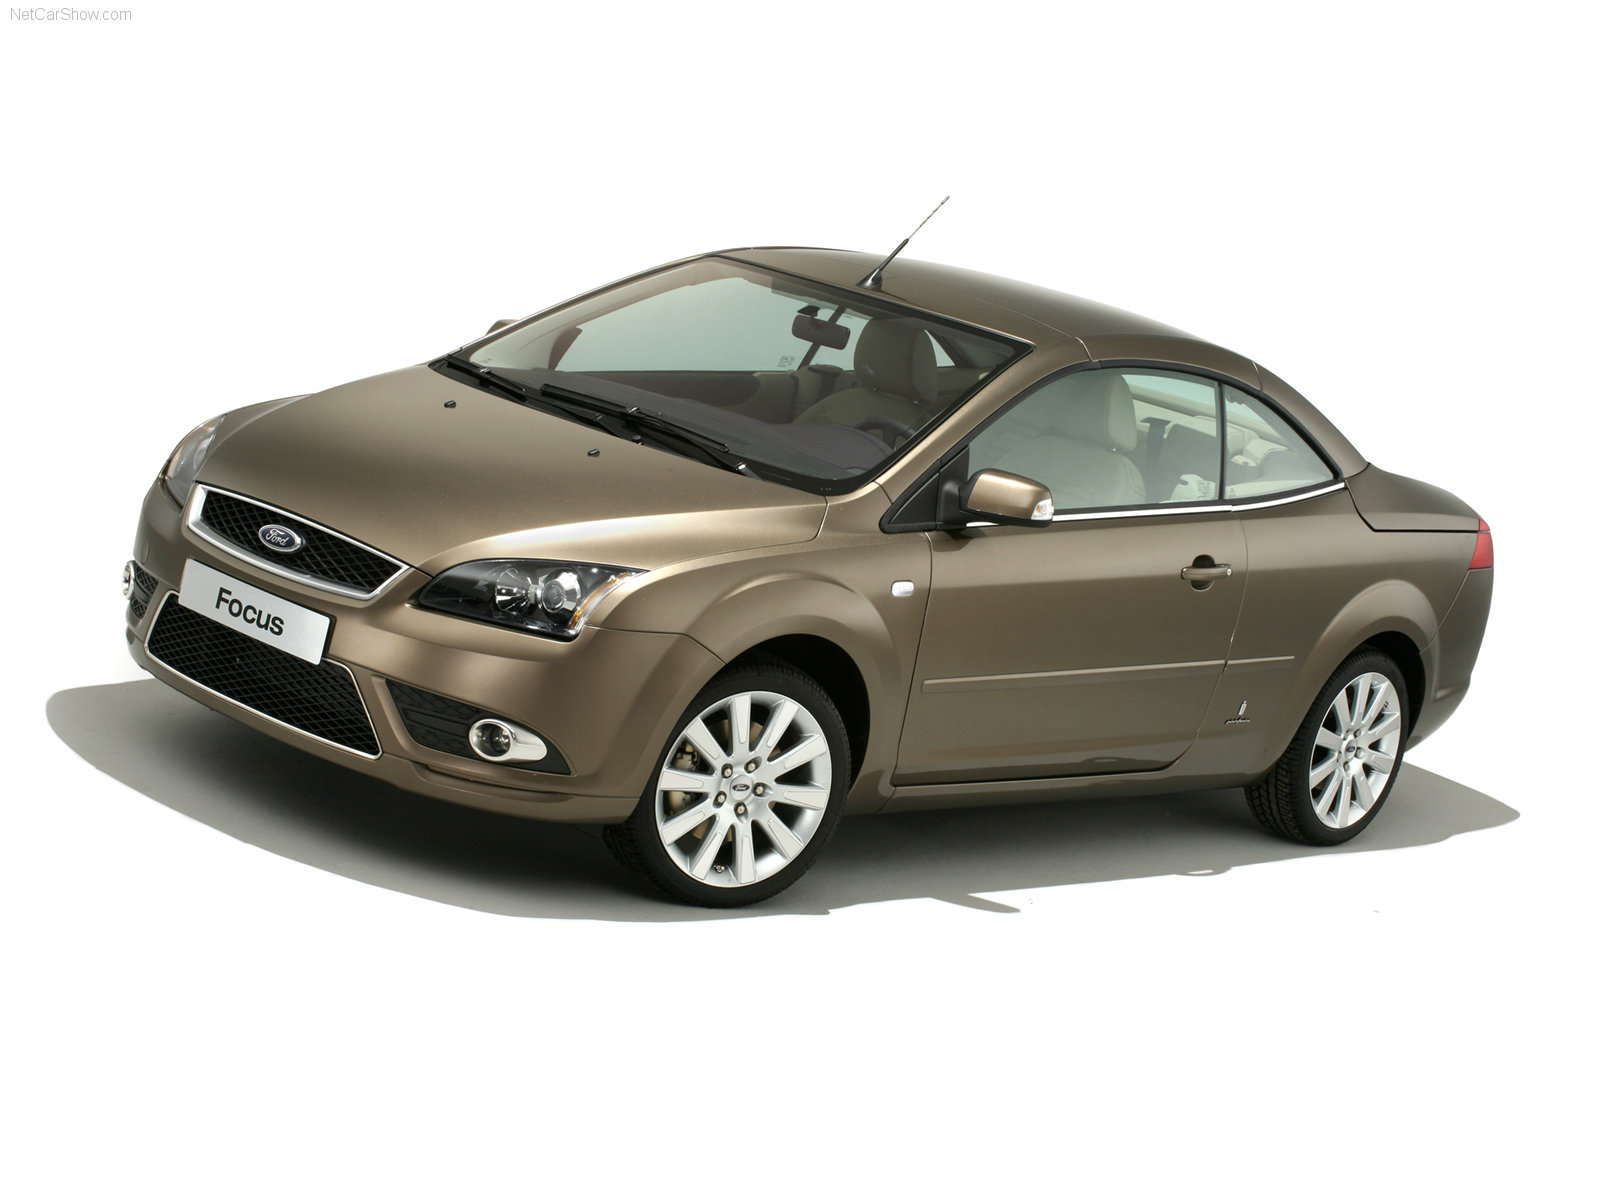 2006 ford focus coupe cabriolet ii pictures information and specs